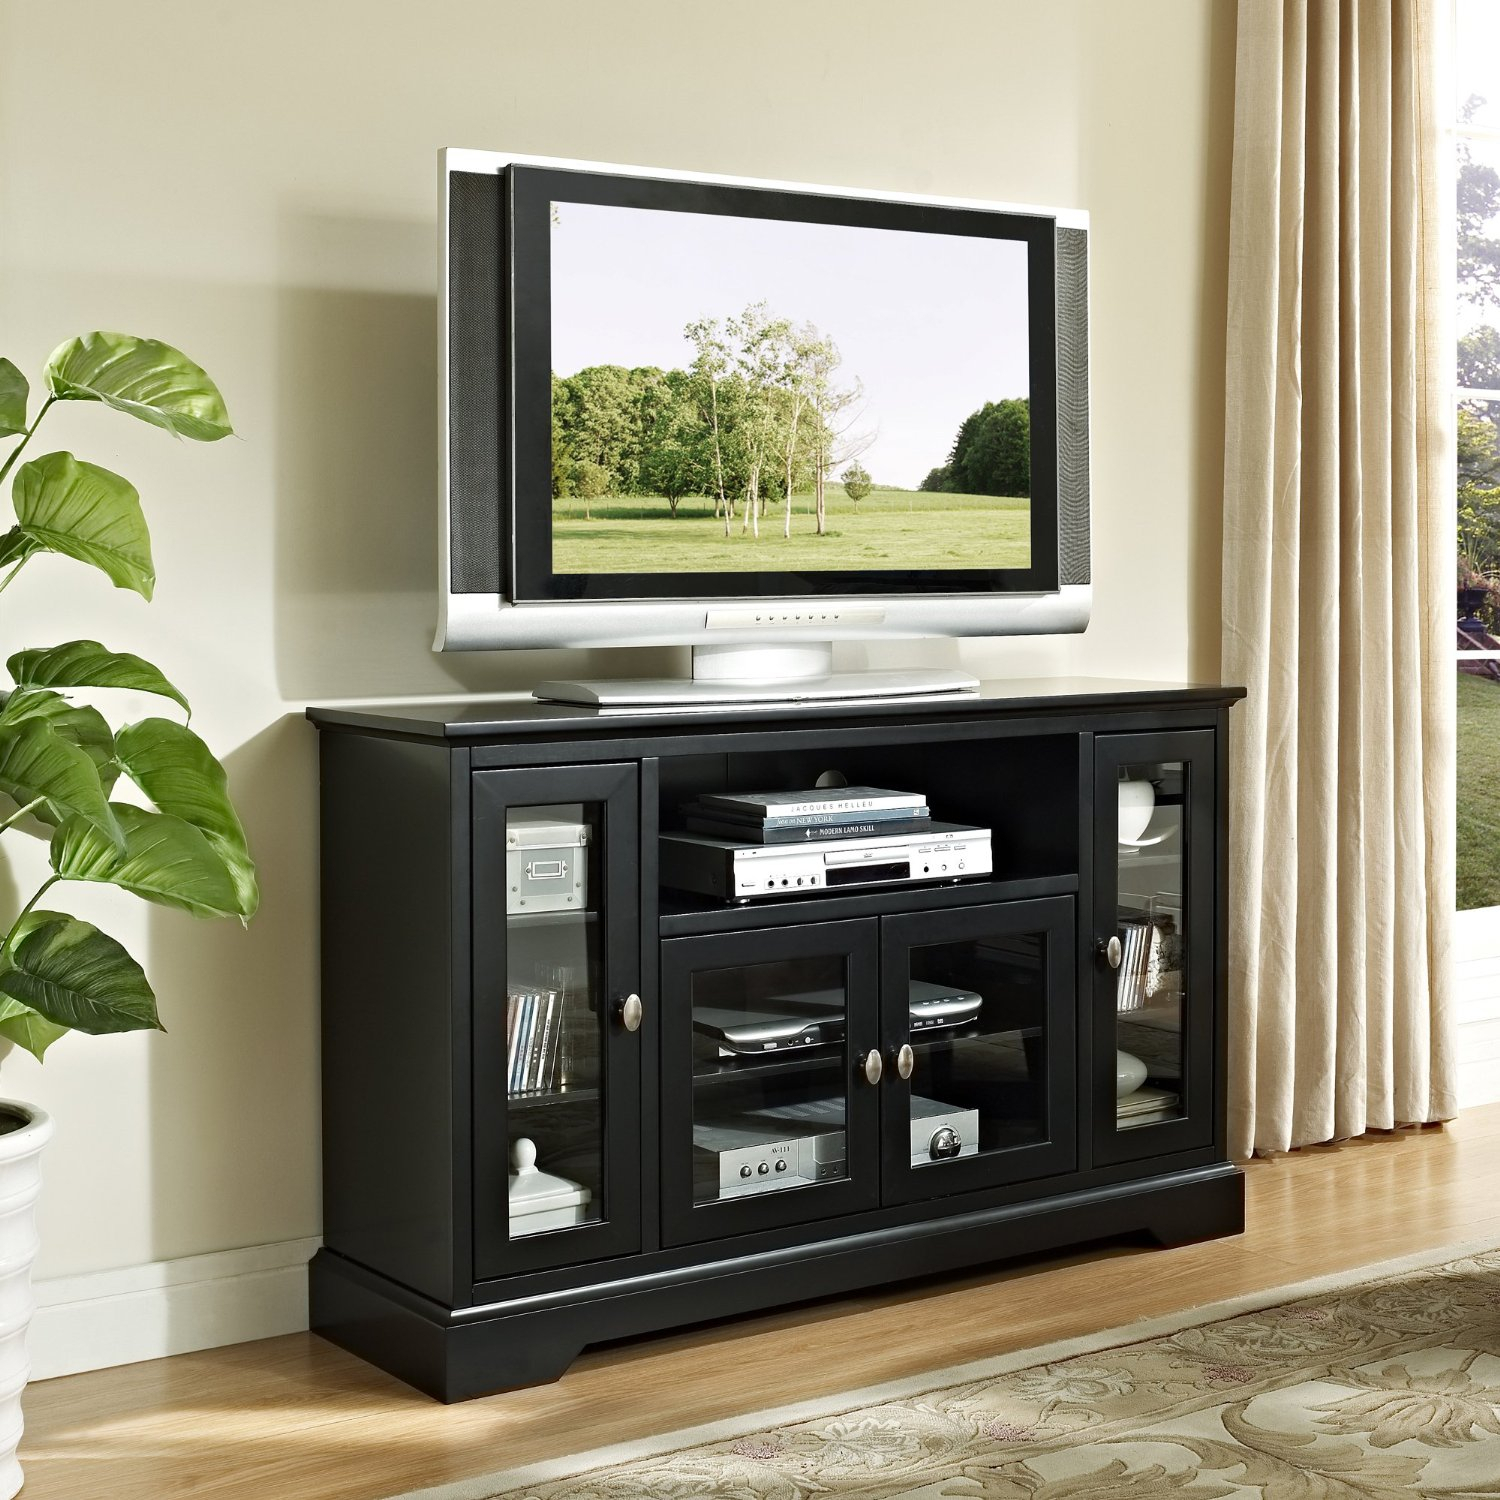 Floating Entertainment Center Mid Century Modern Tv Stand Simple With Regard To Forma 65 Inch Tv Stands (View 9 of 30)